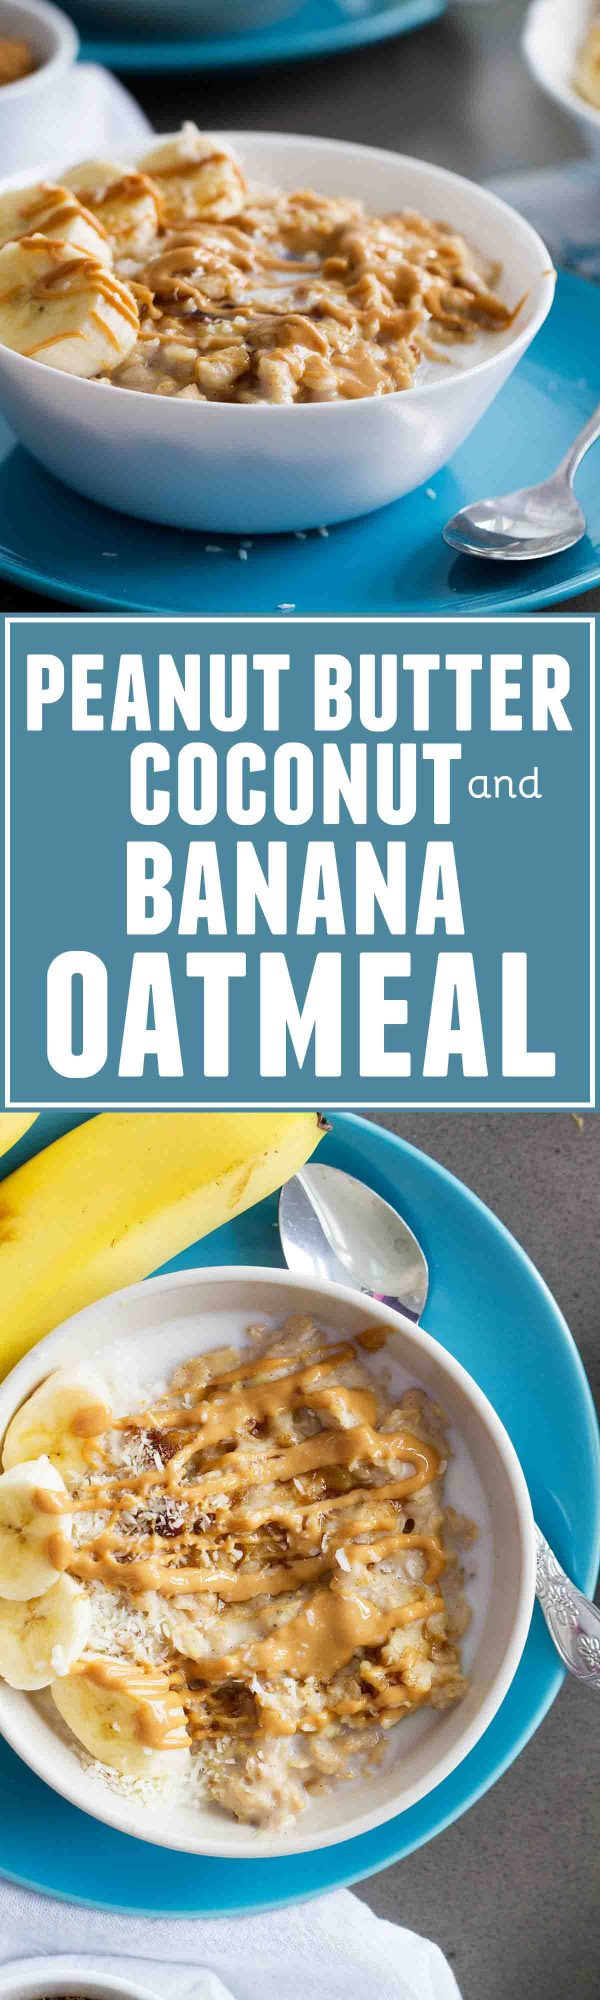 Far from boring, this Peanut Butter, Coconut and Banana Oatmeal is a flavor-packed way to start your day.